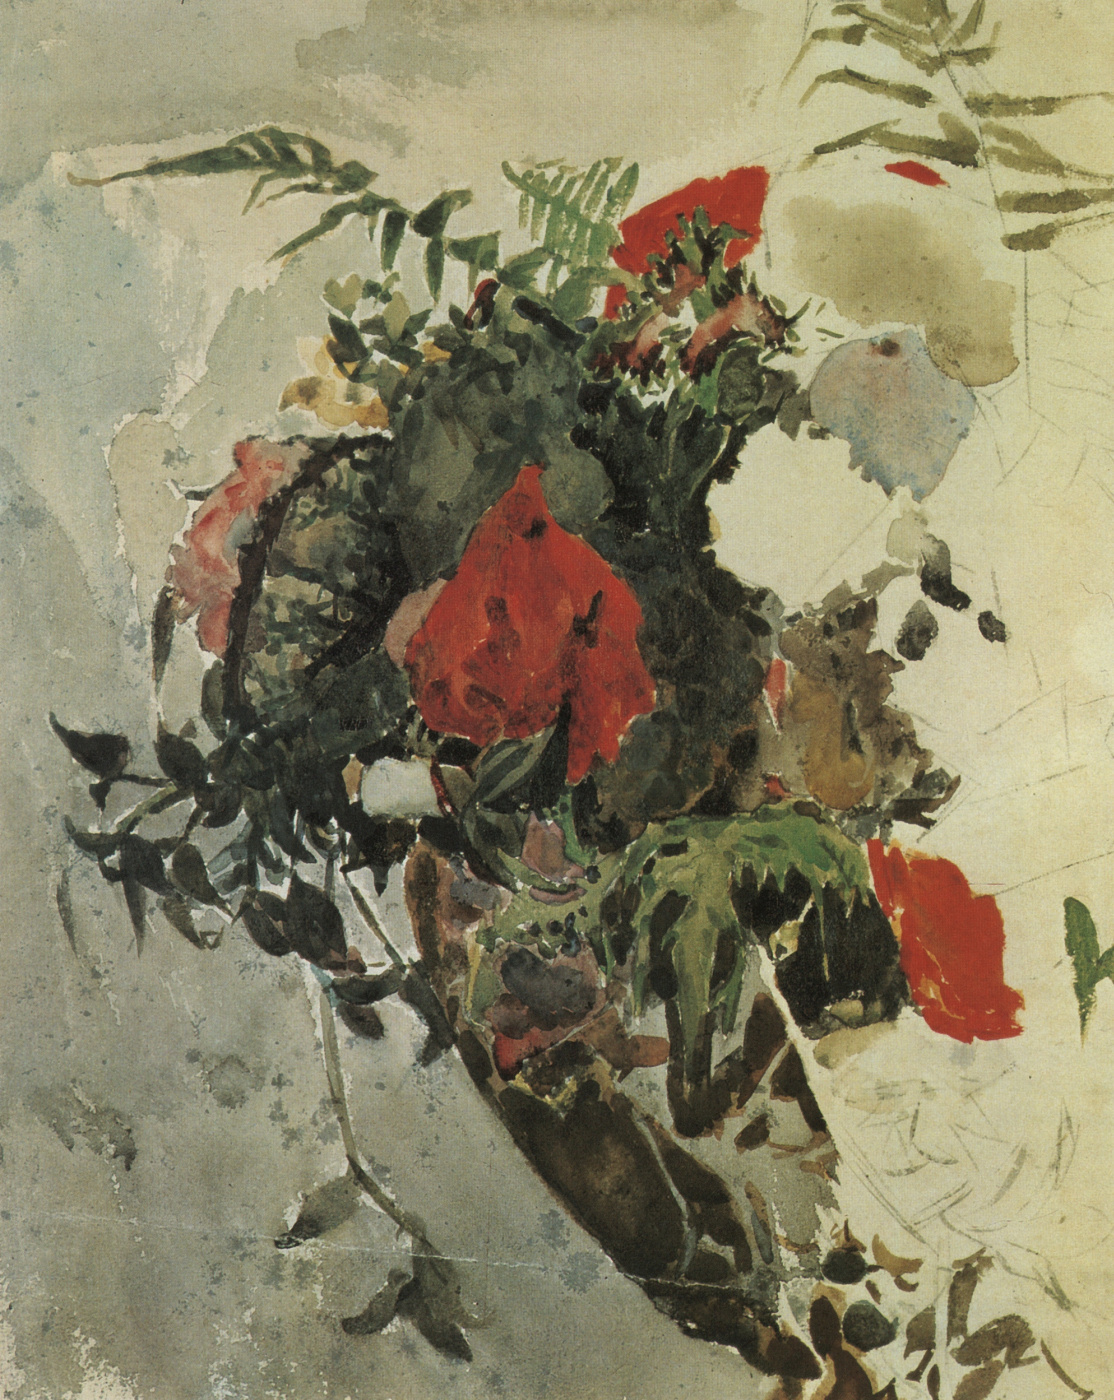 Mikhail Vrubel. Red flowers and leaves of begonia basket. Etude